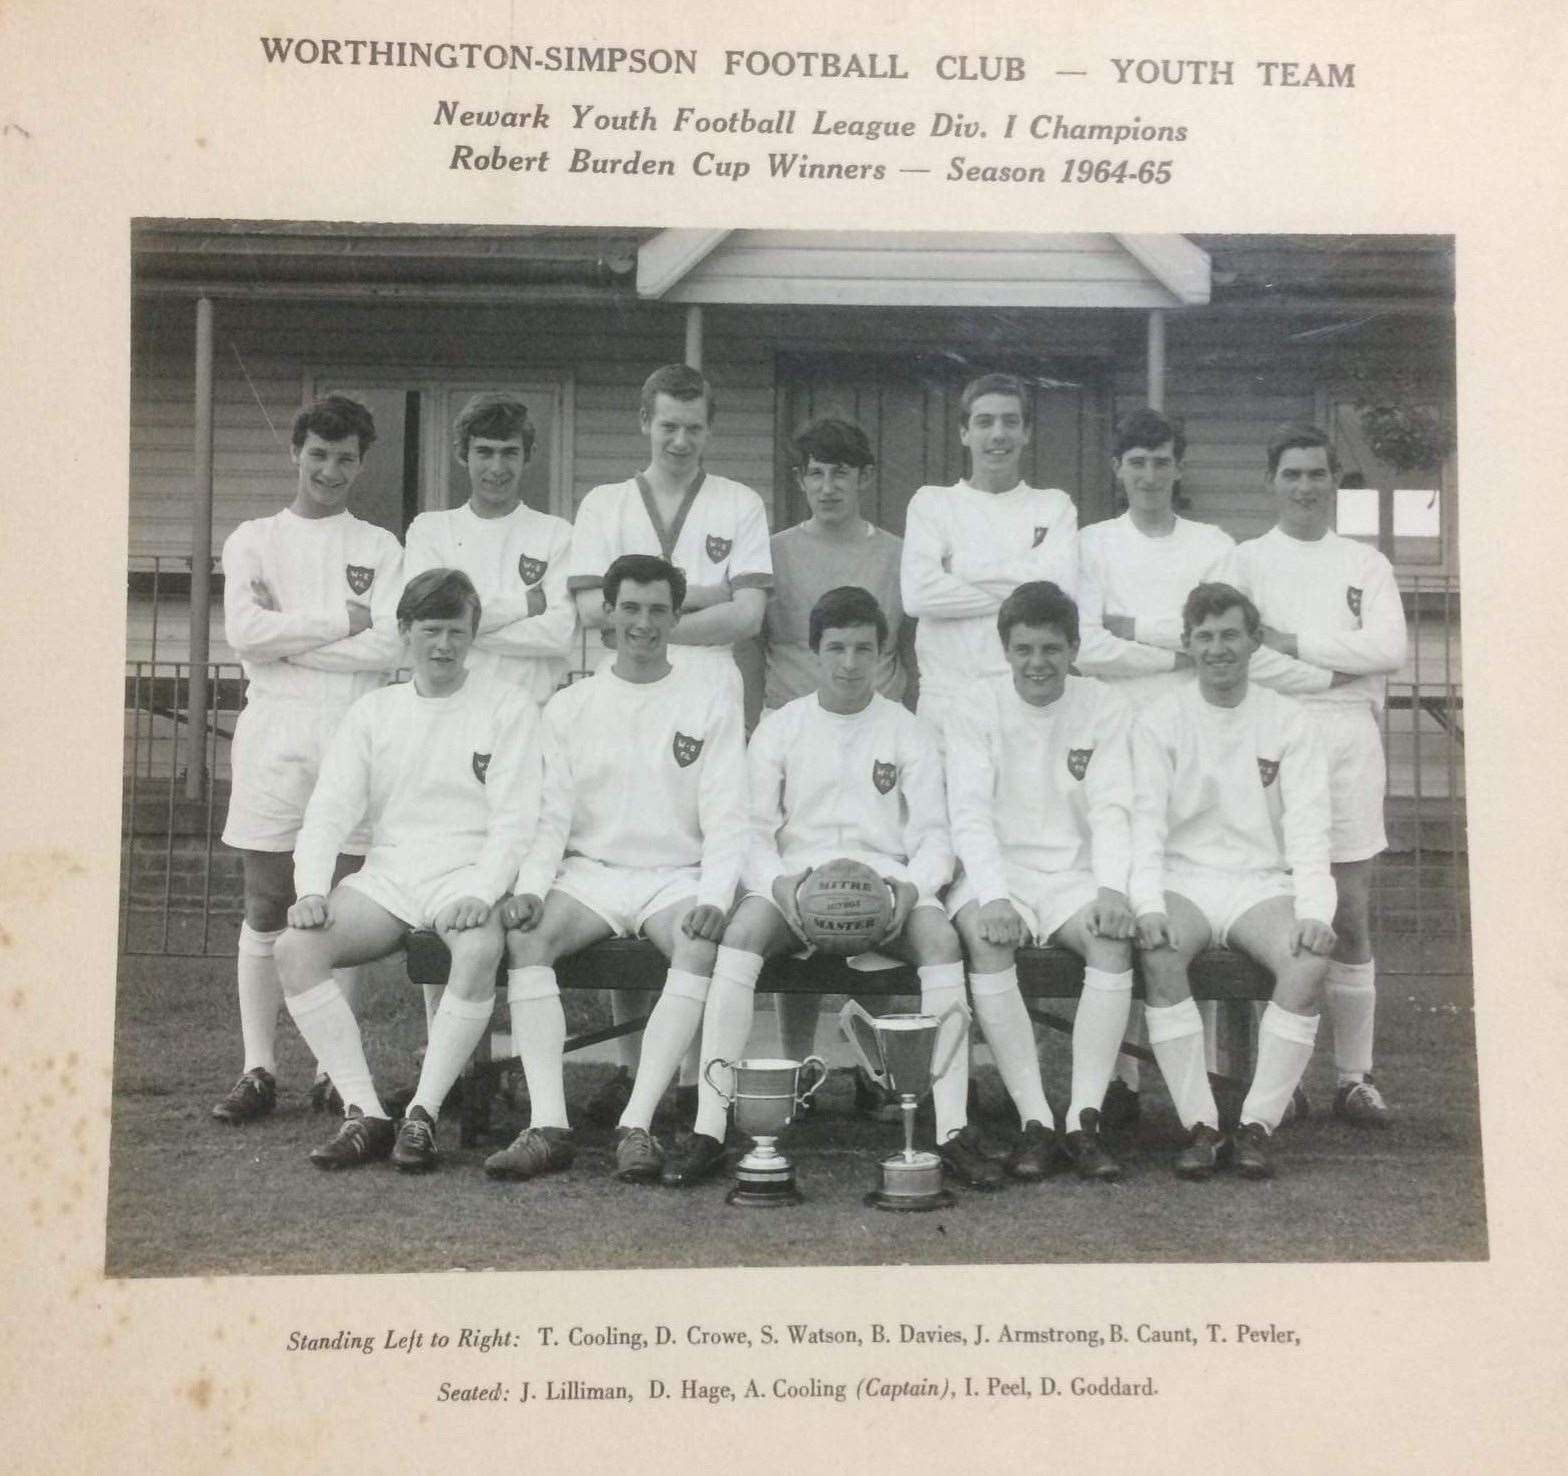 Worthington Simpson Football Club, Newark Youth Football League Div. 1 Champions. Robert Burden Cup winners — Season 1964/65. Alvyn Cooling is pictured in the centre on the front row.